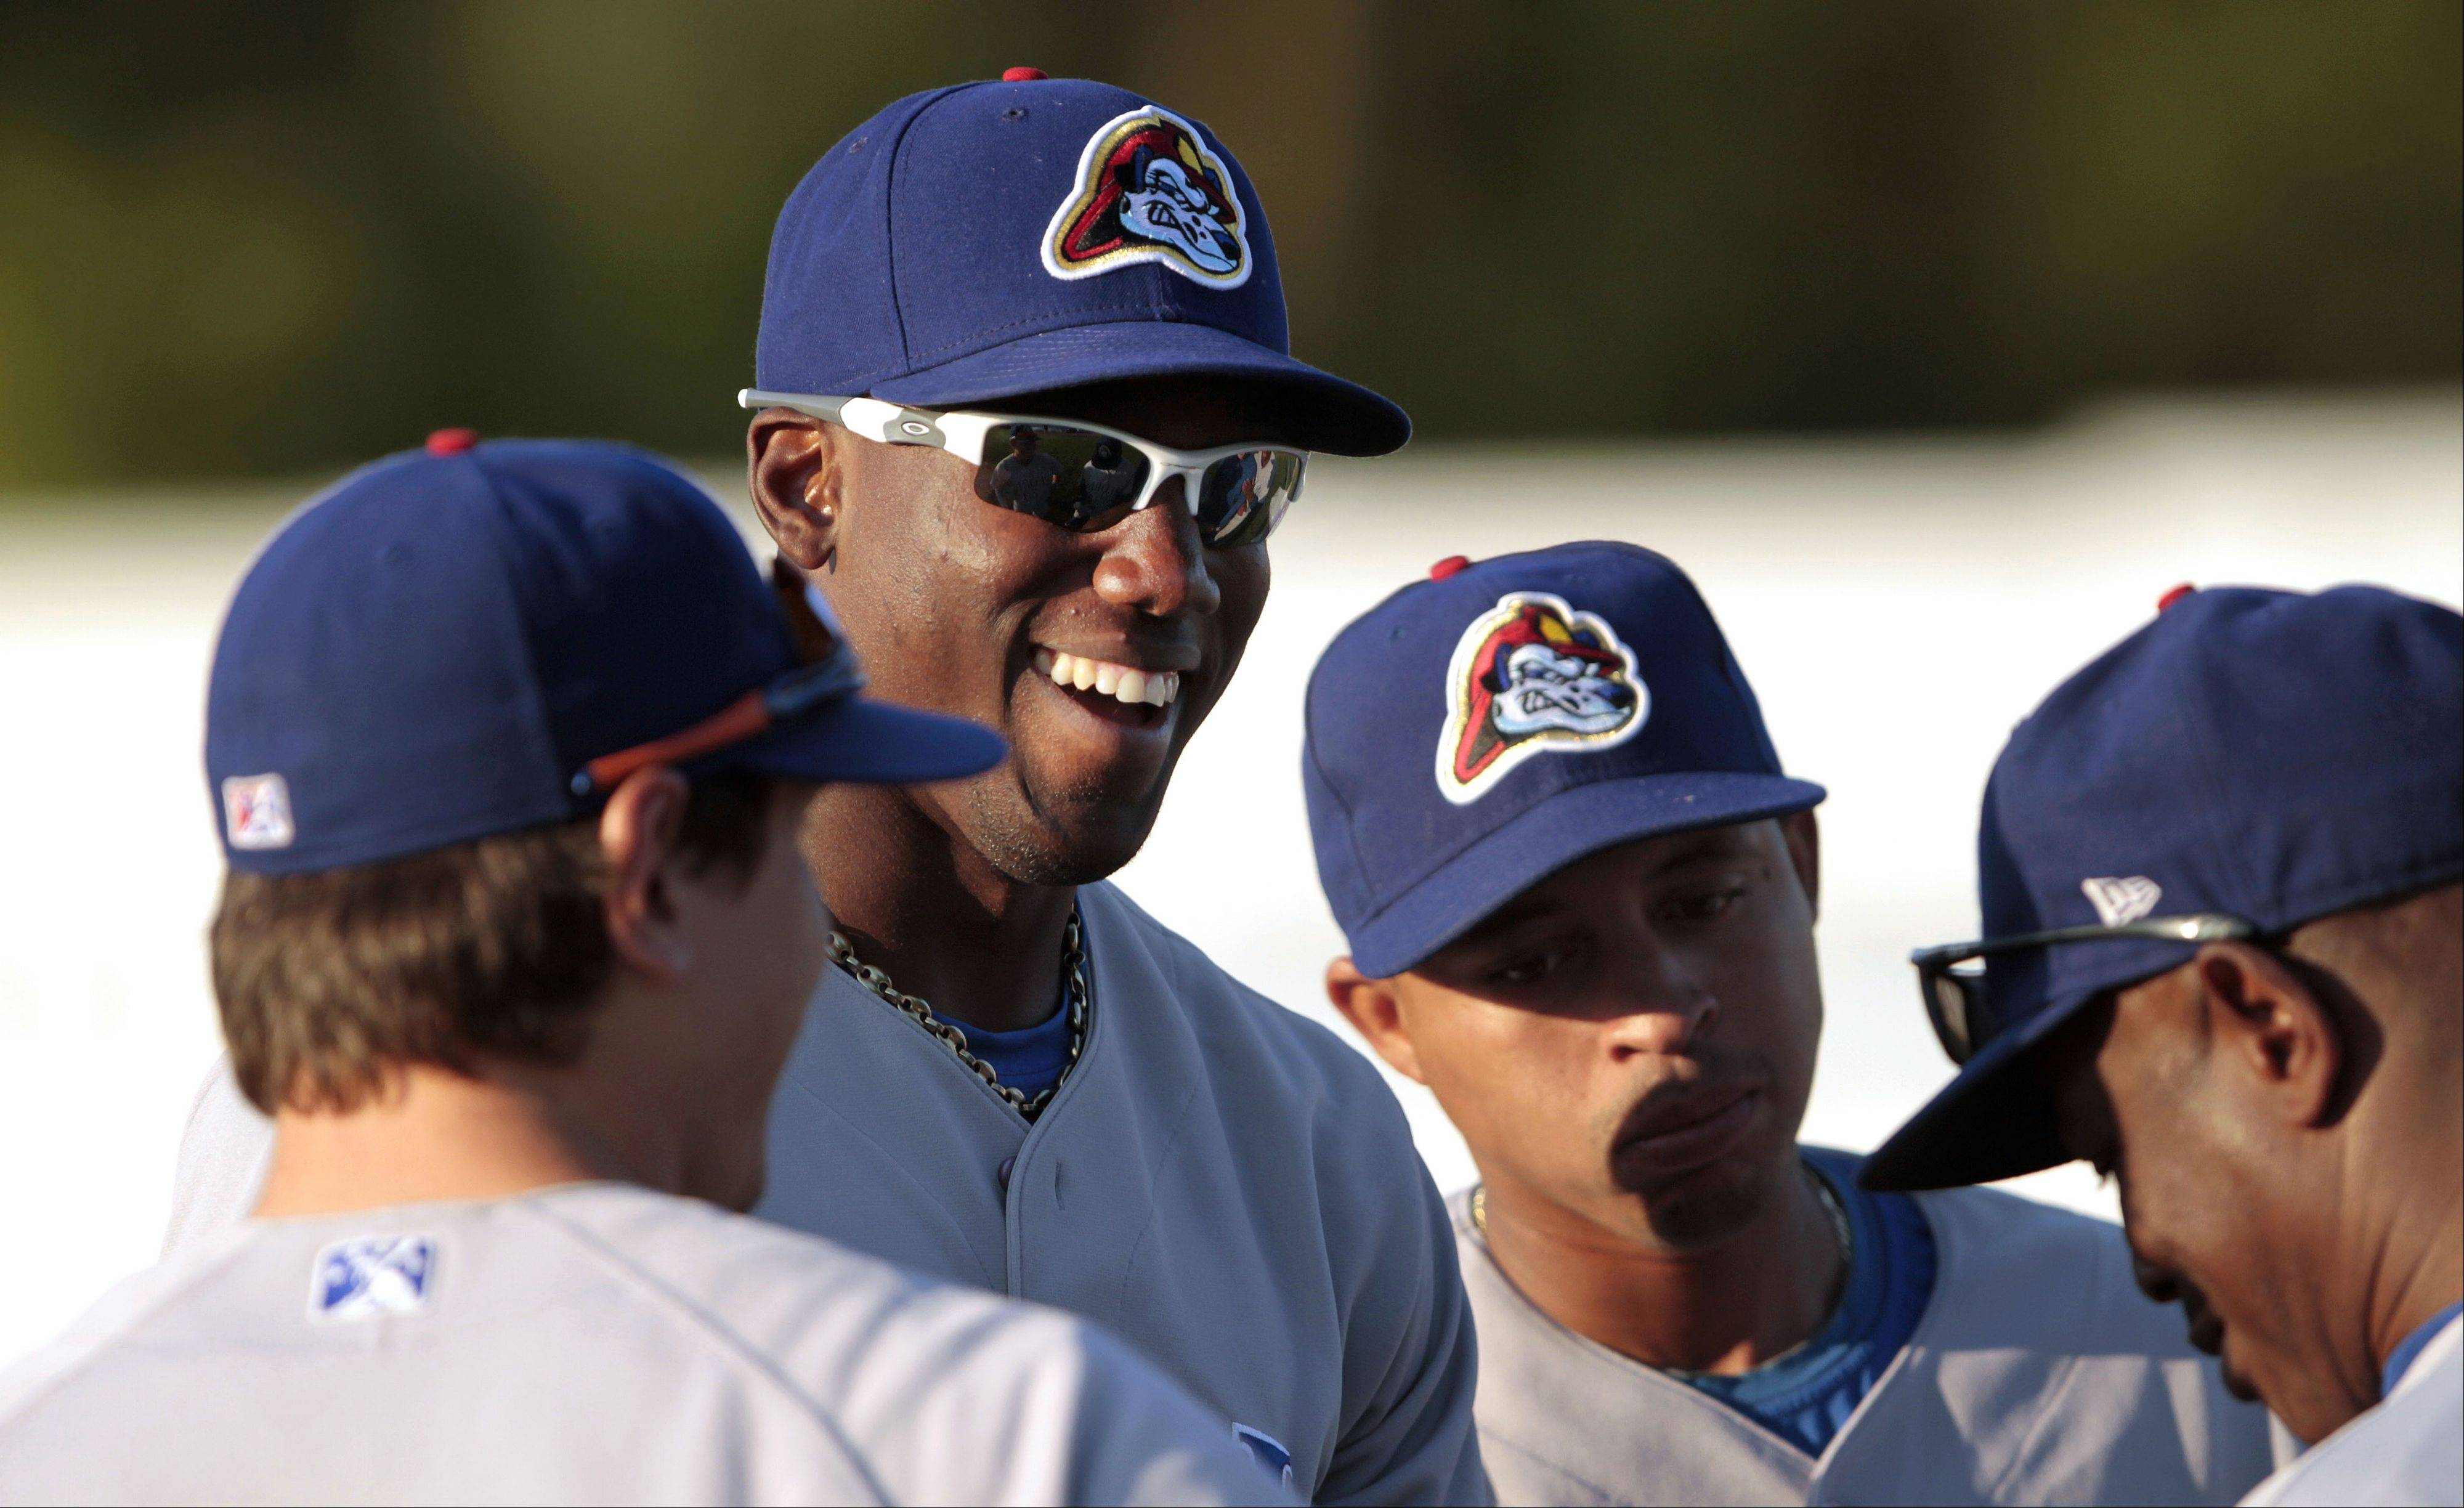 Cubs prospect Jorge Soler jokes with Peoria Chiefs teammates before a game with the Beloit Snappers. A report by the Chicago Sun-Times says say the Cubs Class A team may be moving to Kane County, which would not re-sign with the Kansas City Royals.